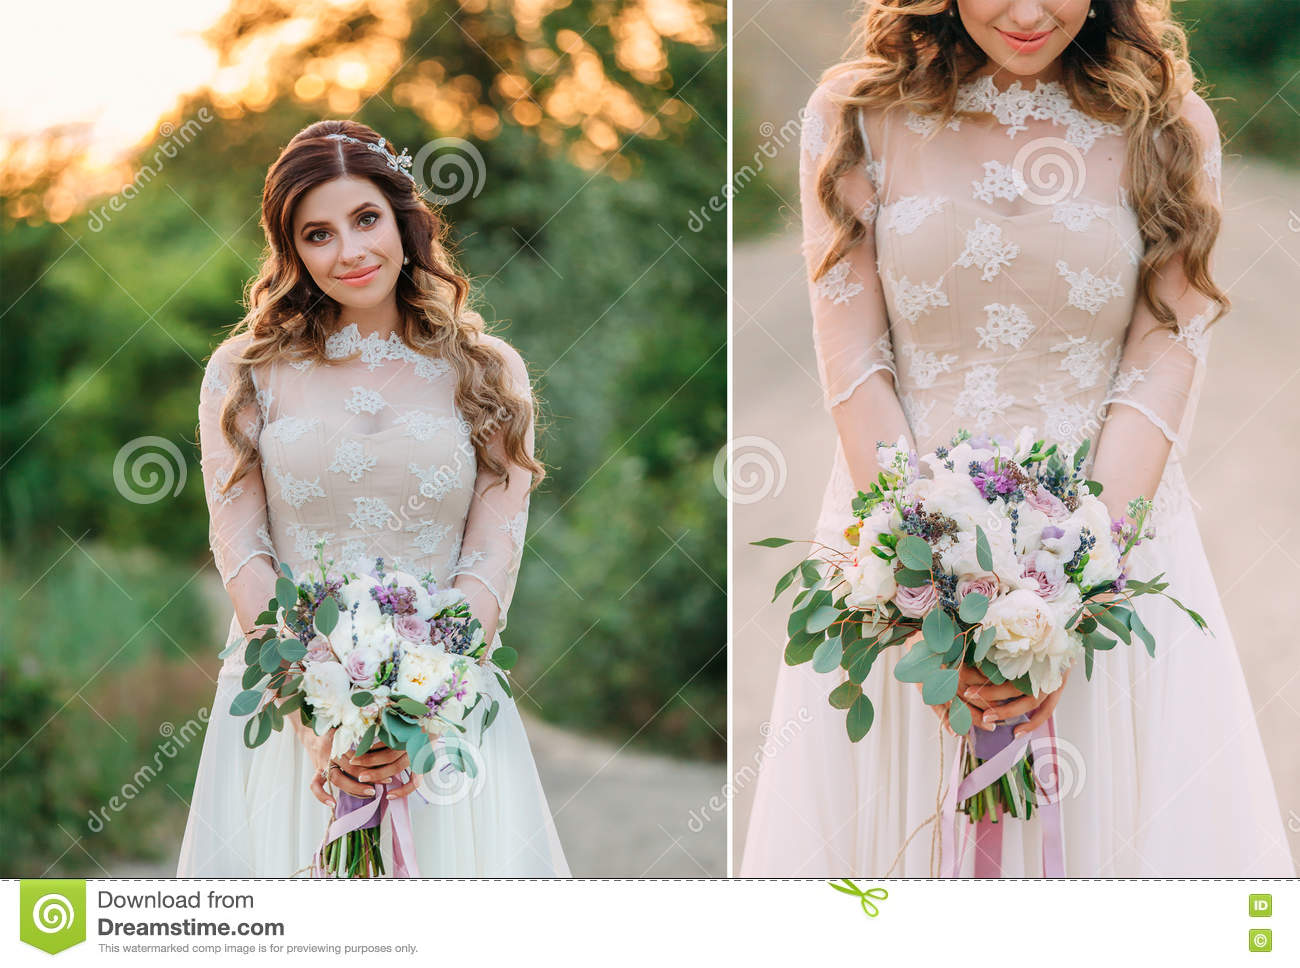 Lady In White Dress In Nature With A Beautiful Bouquet Of Flower